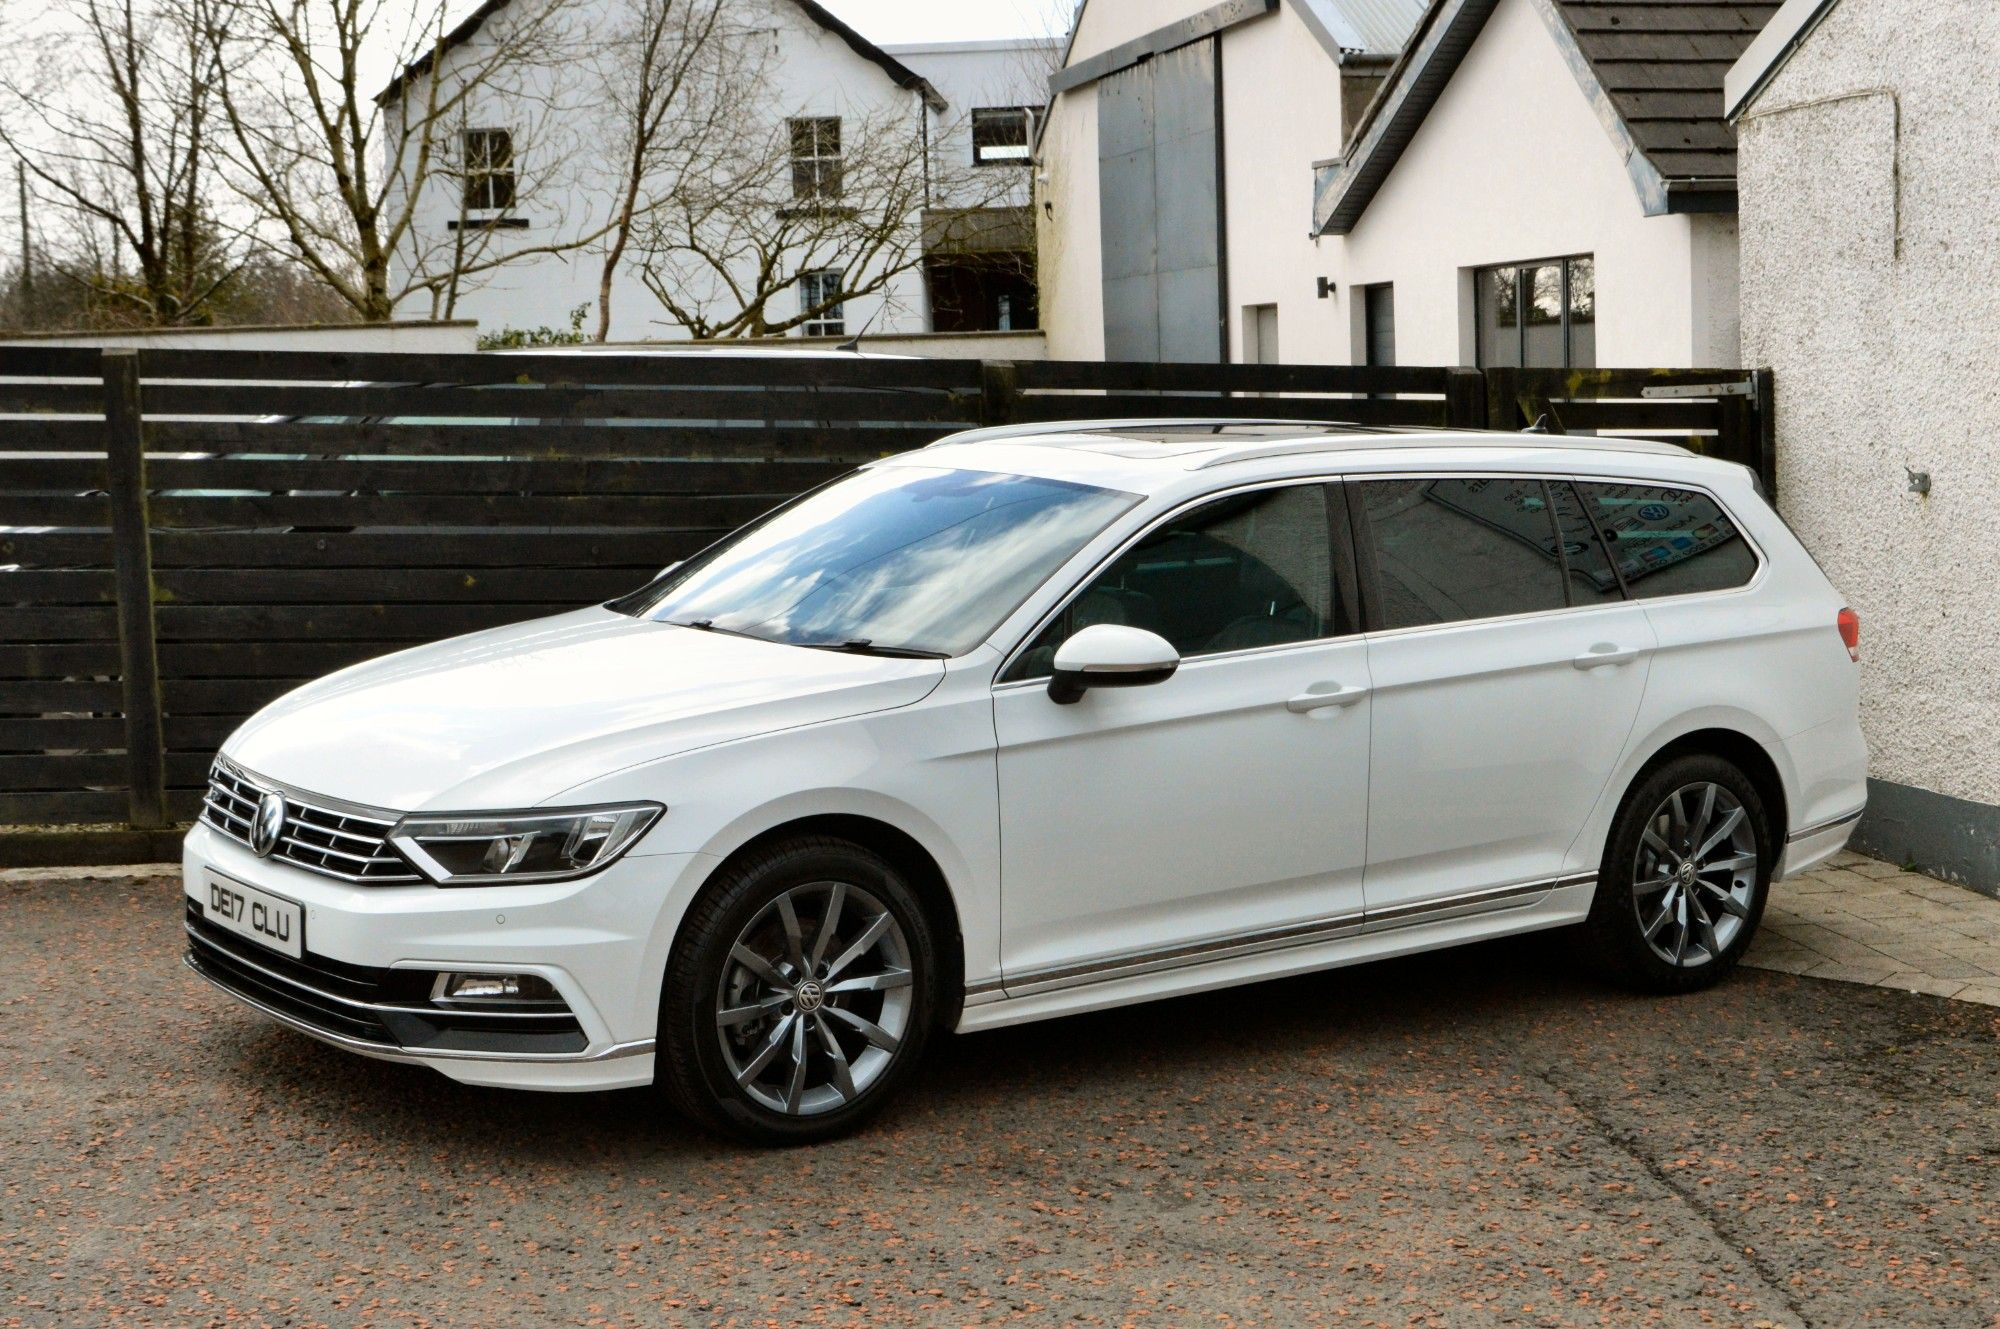 USED 2017 17 VOLKSWAGEN PASSAT 2.0 R LINE TDI BLUEMOTION TECHNOLOGY 5d 148 BHP 6 MONTHS RAC WARRANTY FREE + 12 MONTHS ROAD SIDE RECOVERY!